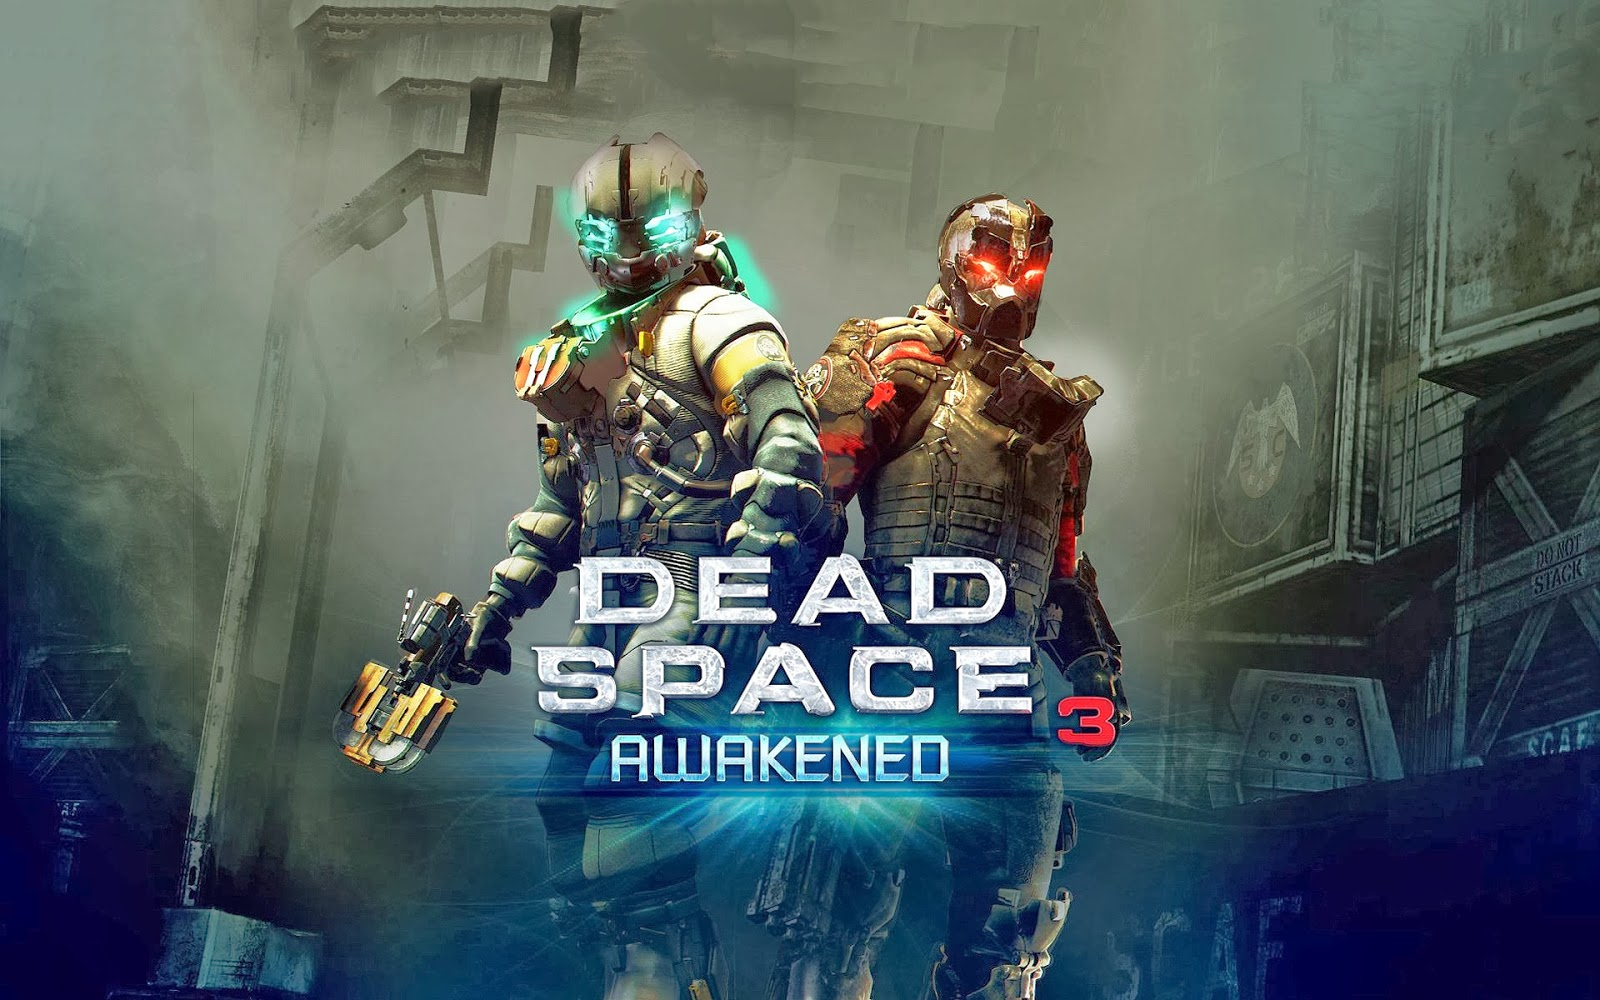 Games wallpaper of dead space 3   Wallpaper View HD games  game wallpaper  game wallpapers  games wallpaper  game pictures